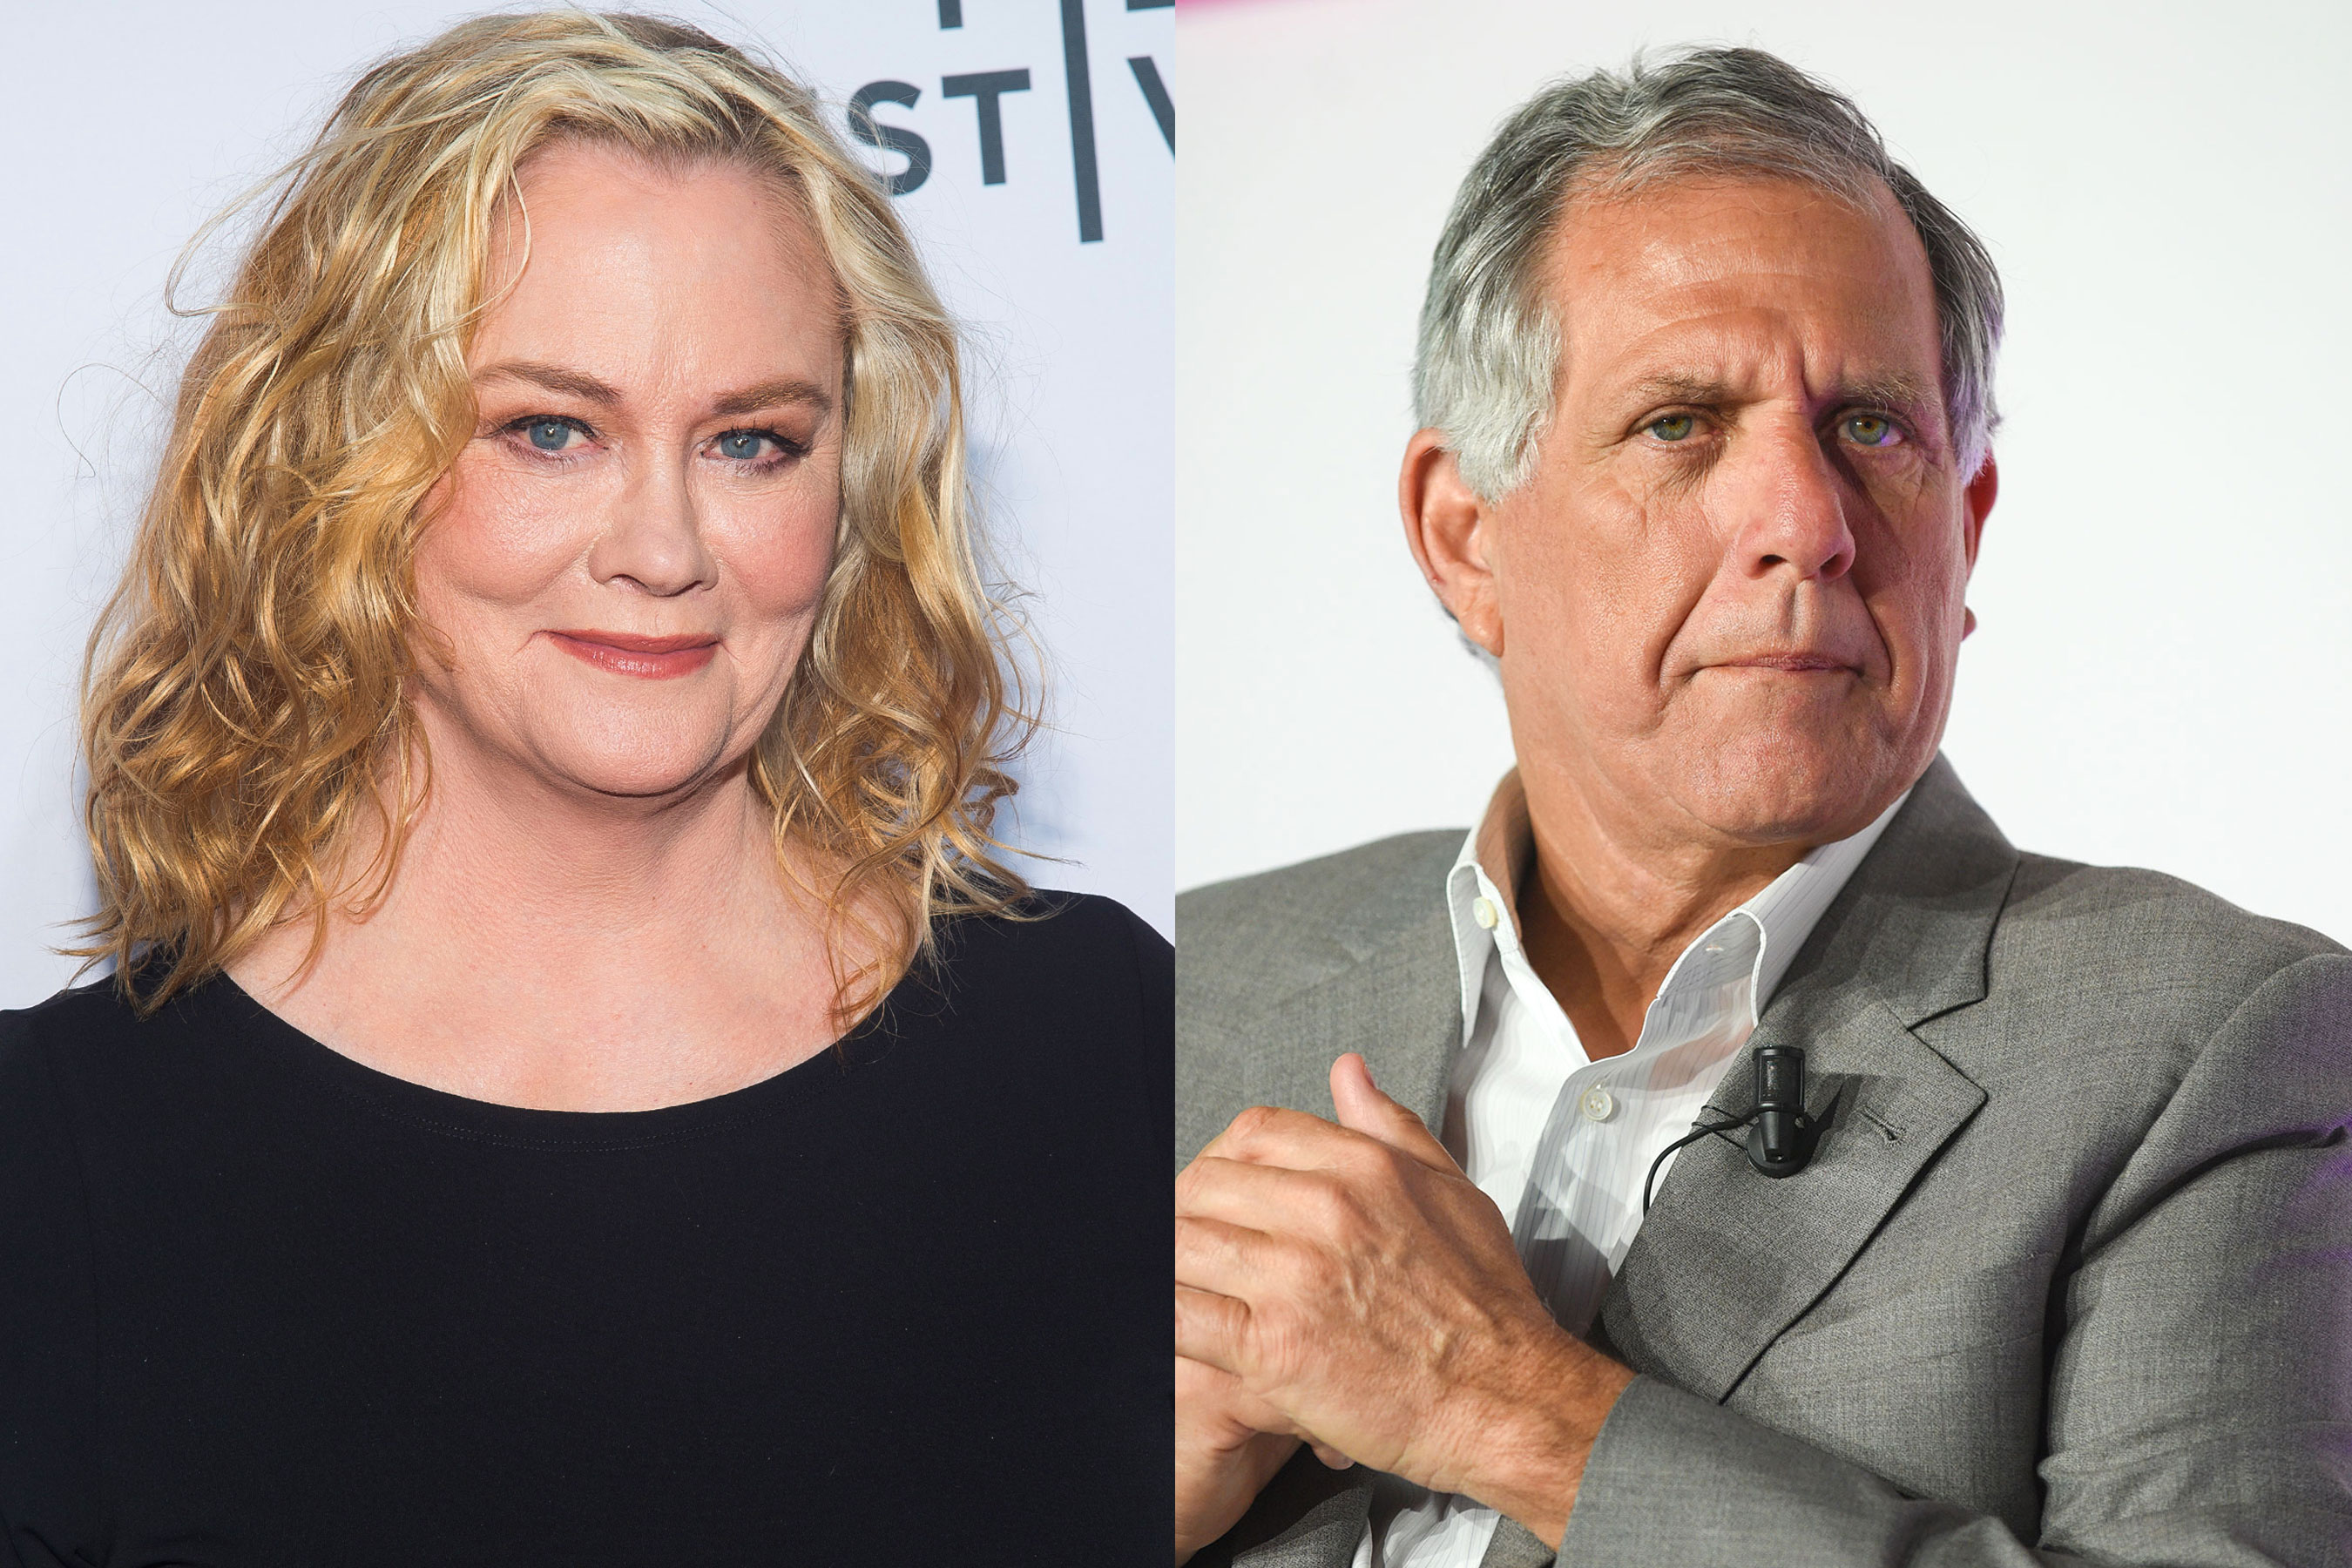 Cybill Shepherd Claims Les Moonves Derailed Her CBS Show After She Rejected Him on a Dinner Date